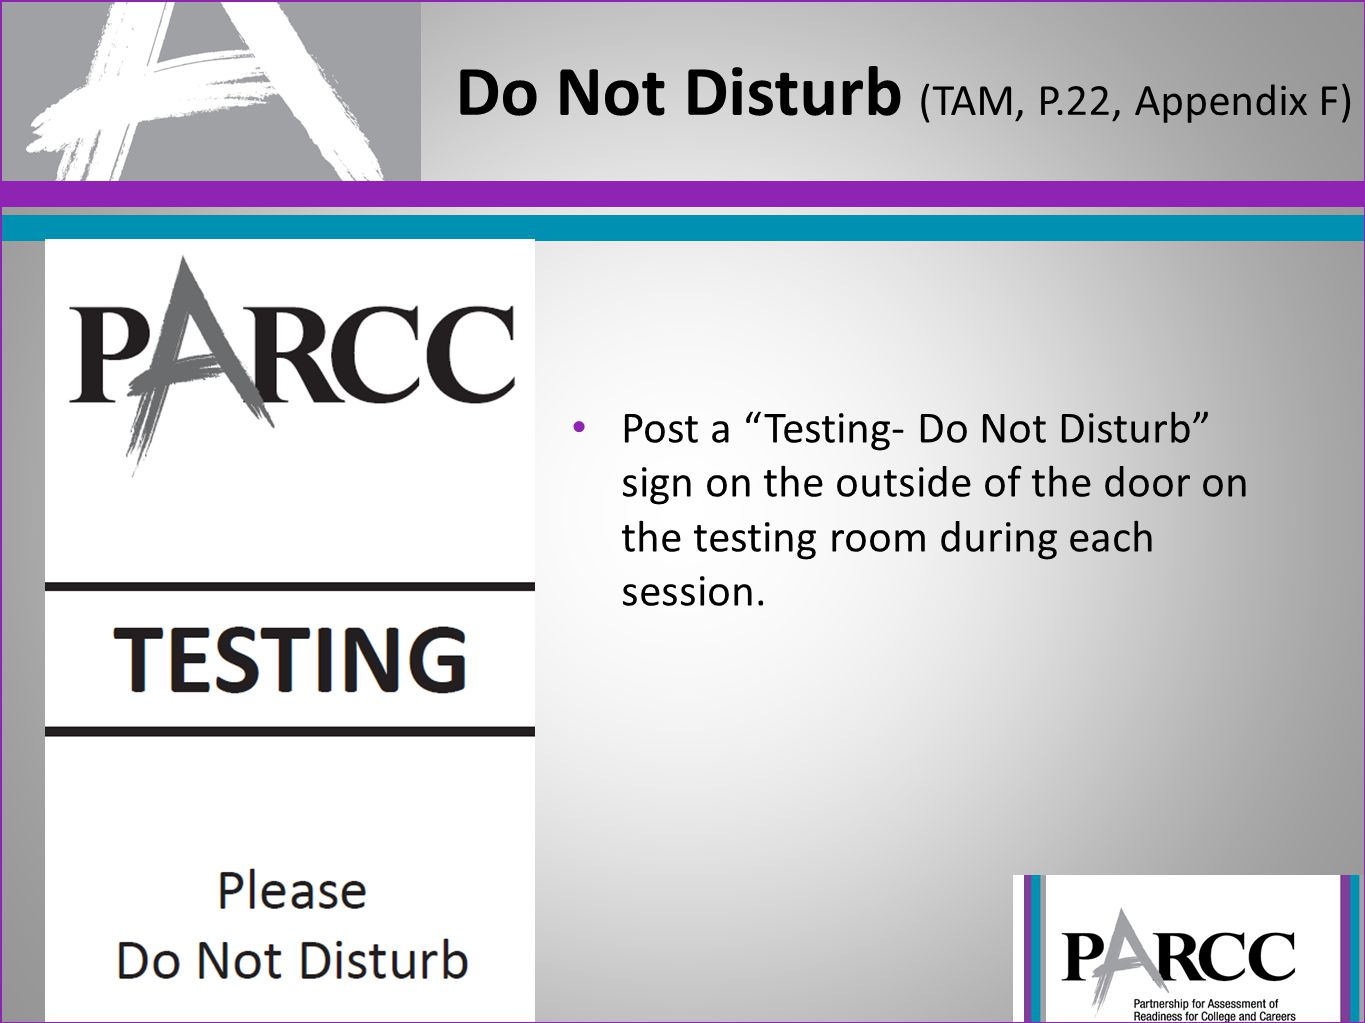 Post a Testing- Do Not Disturb sign on the outside of the door on the testing room during each session.